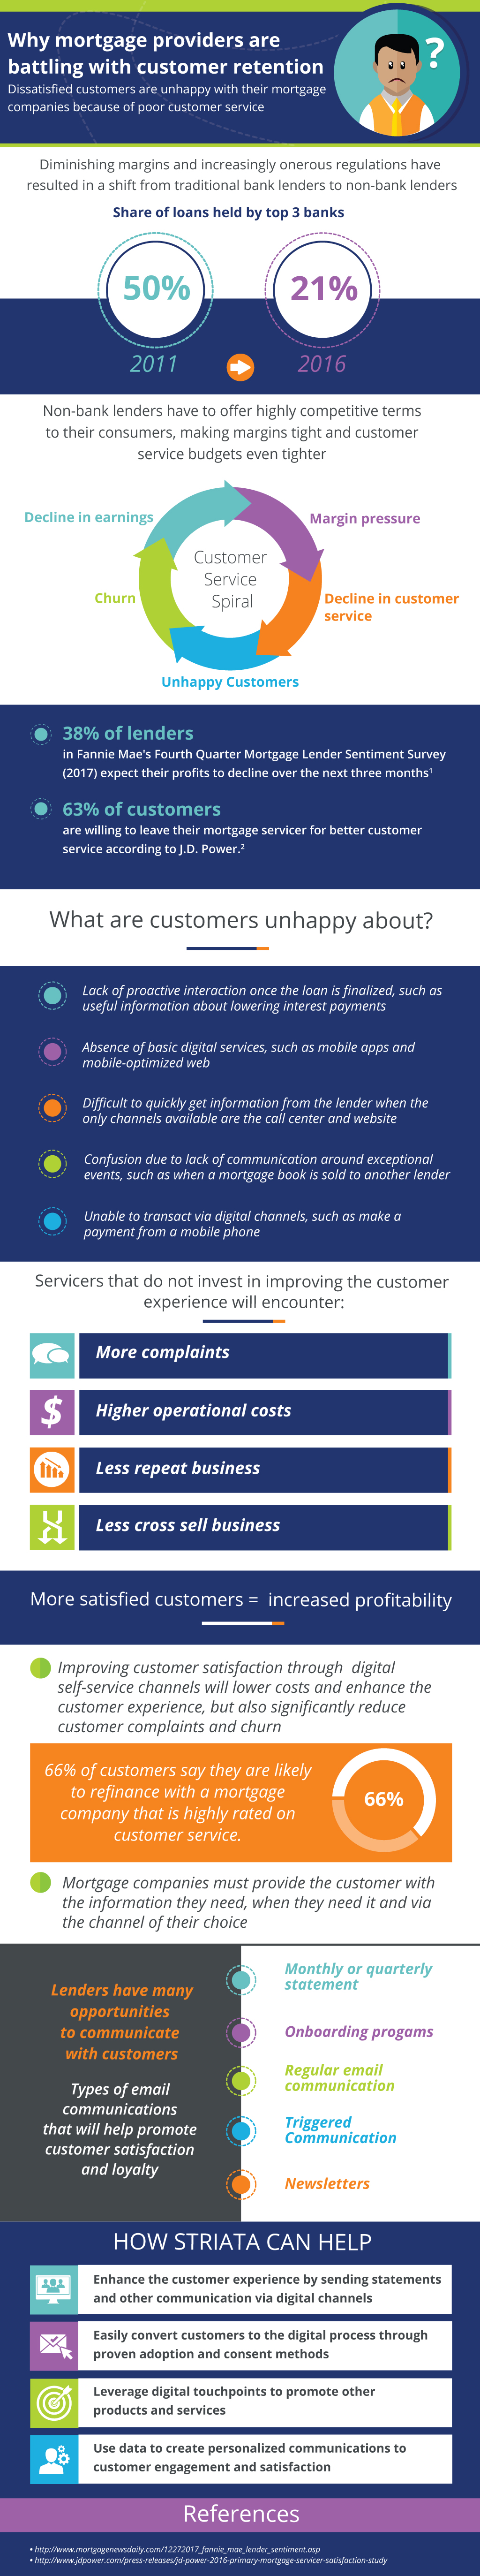 Why Mortgage Providers Are Battling With Customer Retention Infographic